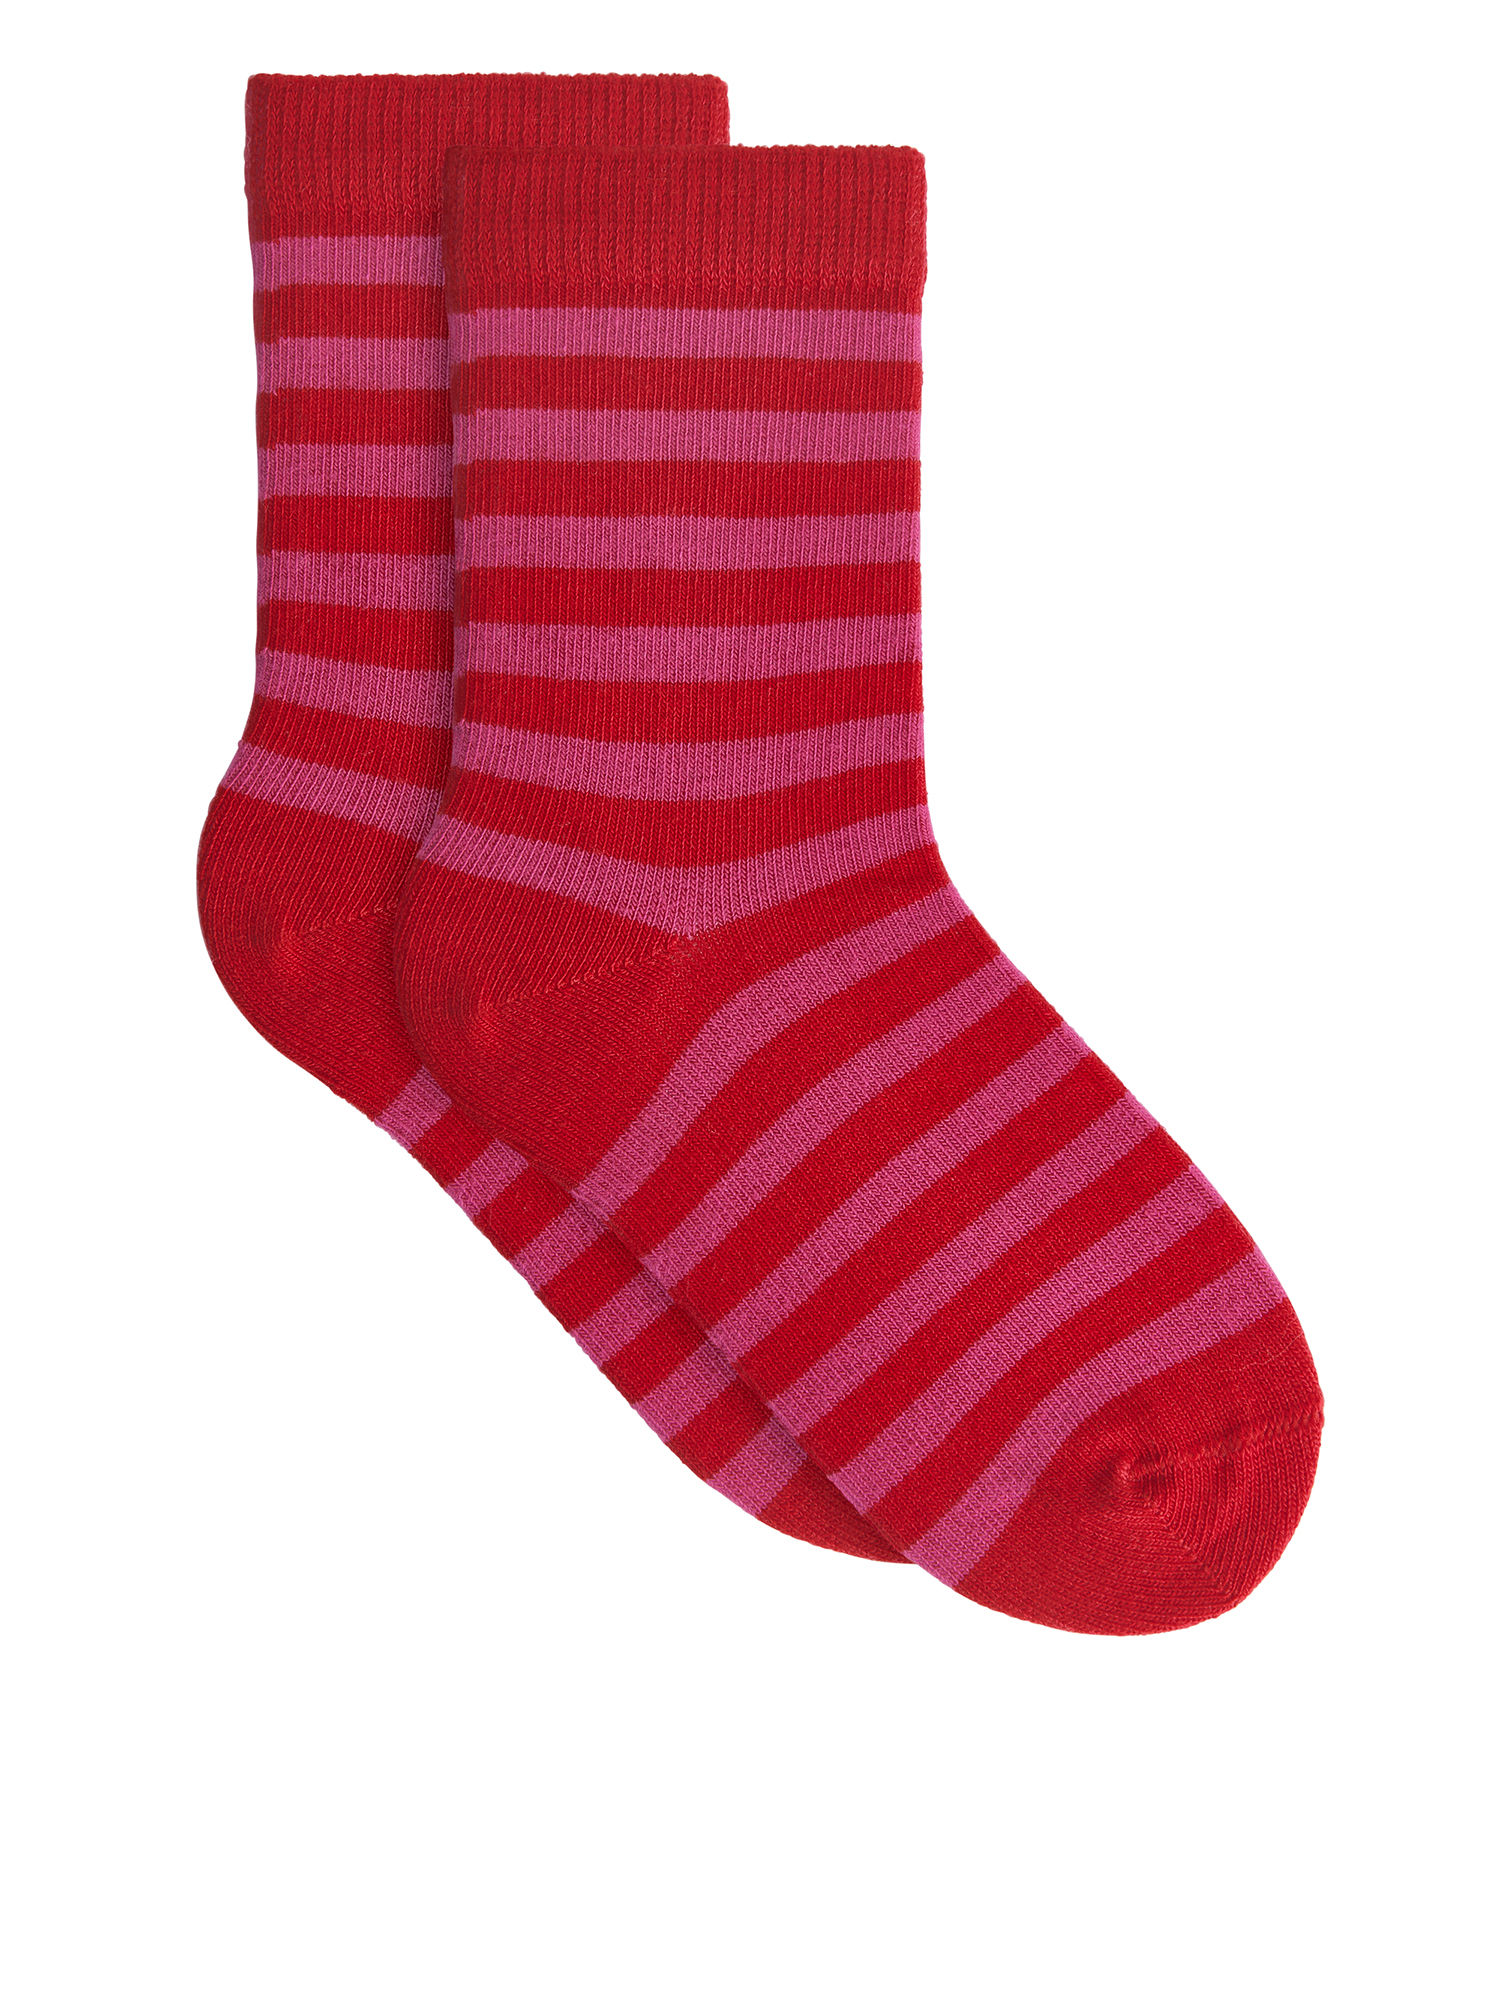 Fabric Swatch image of Arket striped socks, 2-pack in red